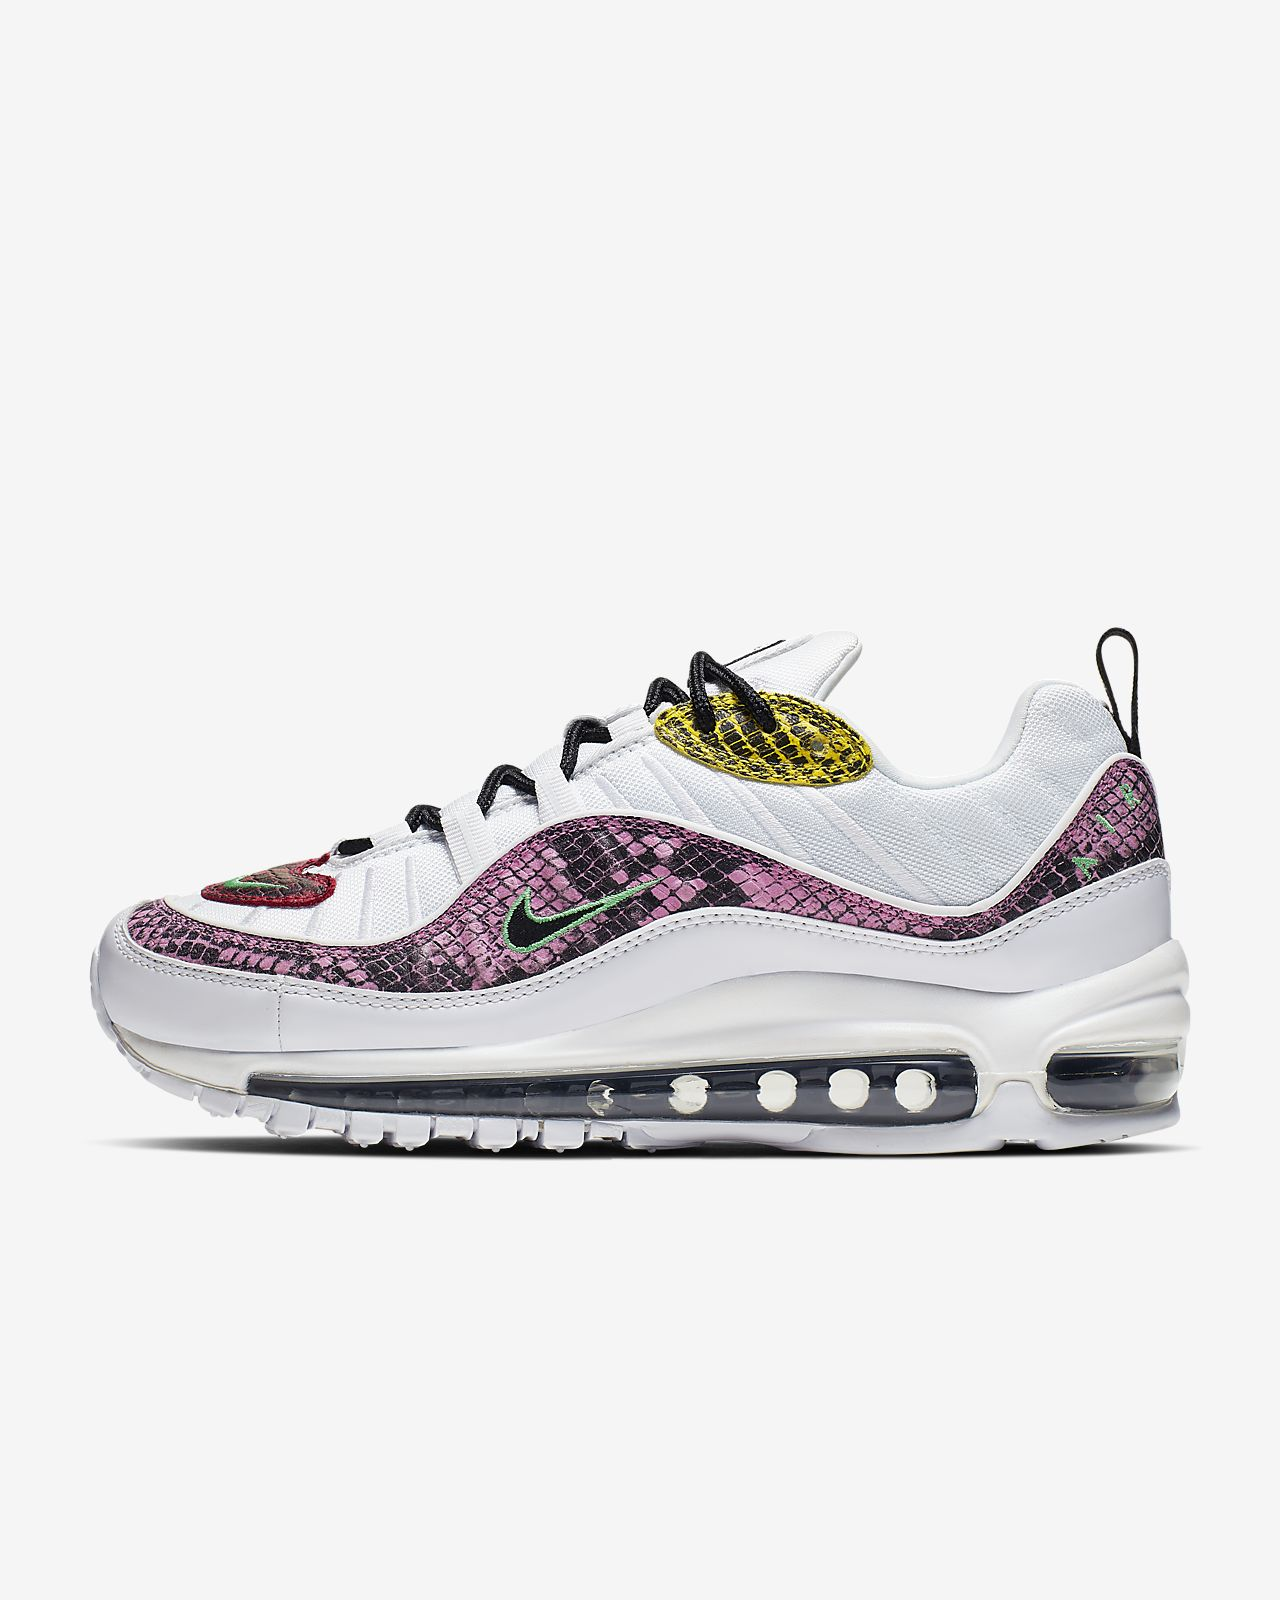 92b2518e14 Nike Air Max 98 Premium Animal Women's Shoe. Nike.com CA